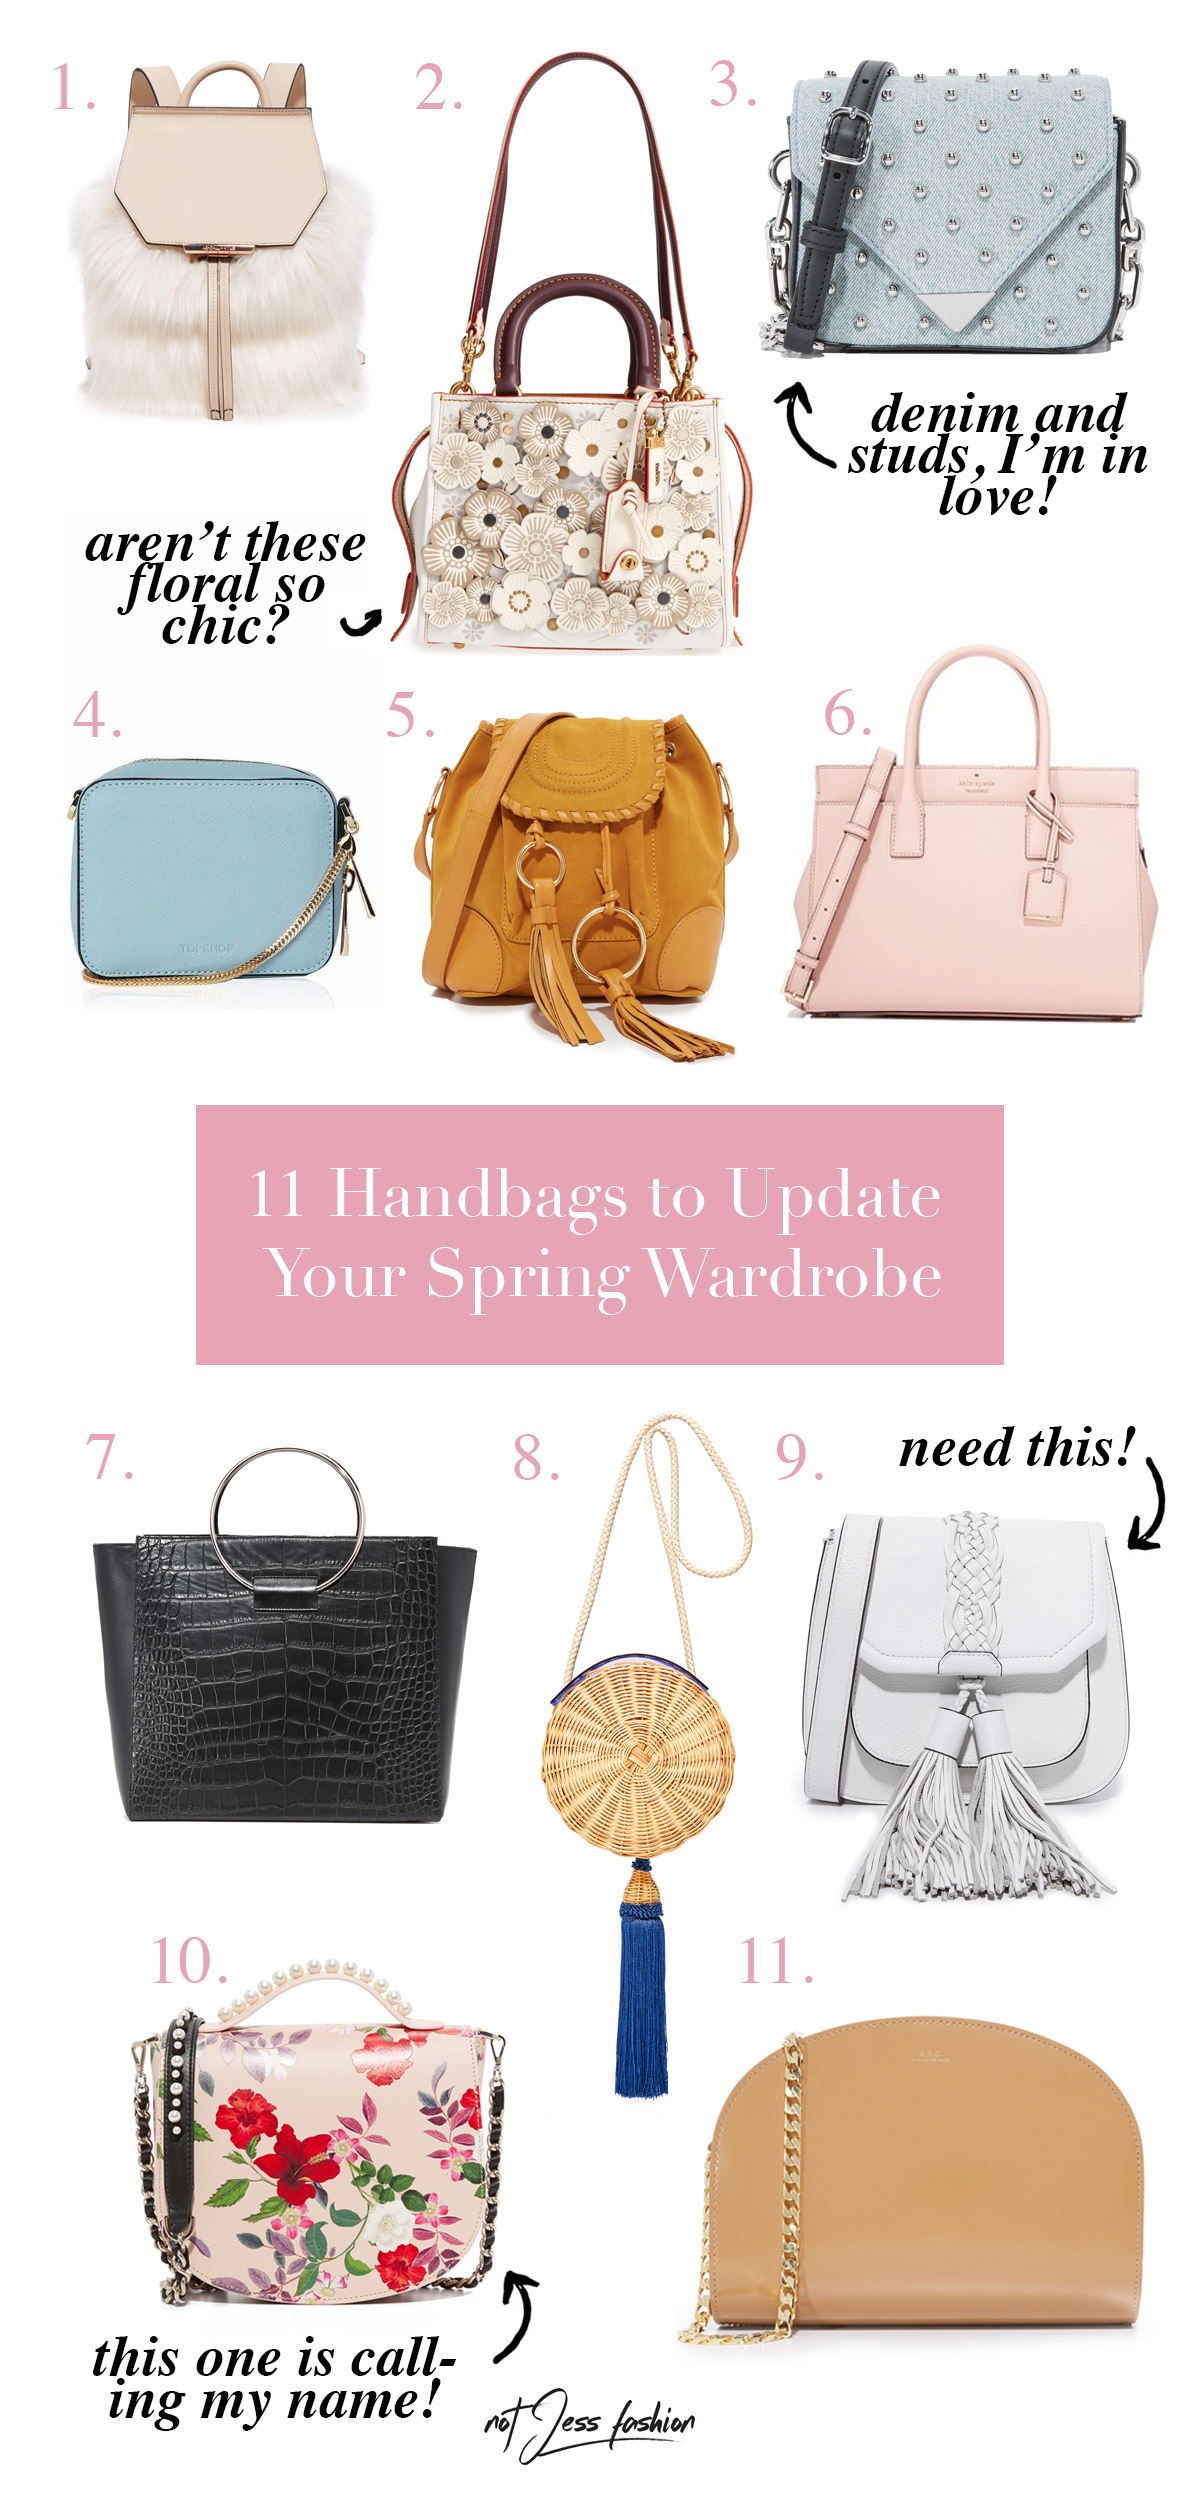 11 Spring Handbags to Update Your Wardrobe // NotJessFashion.com